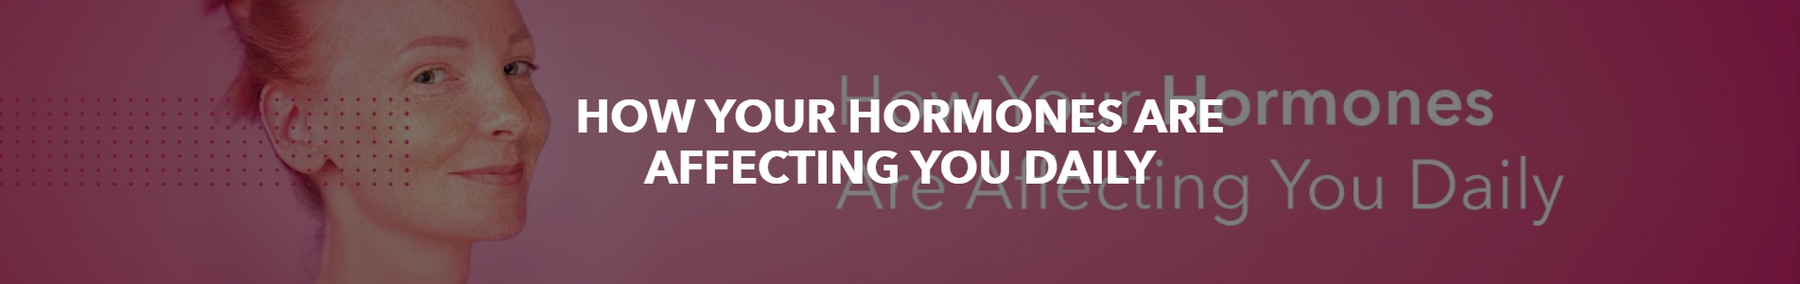 How Your Hormones Are Affecting You Daily